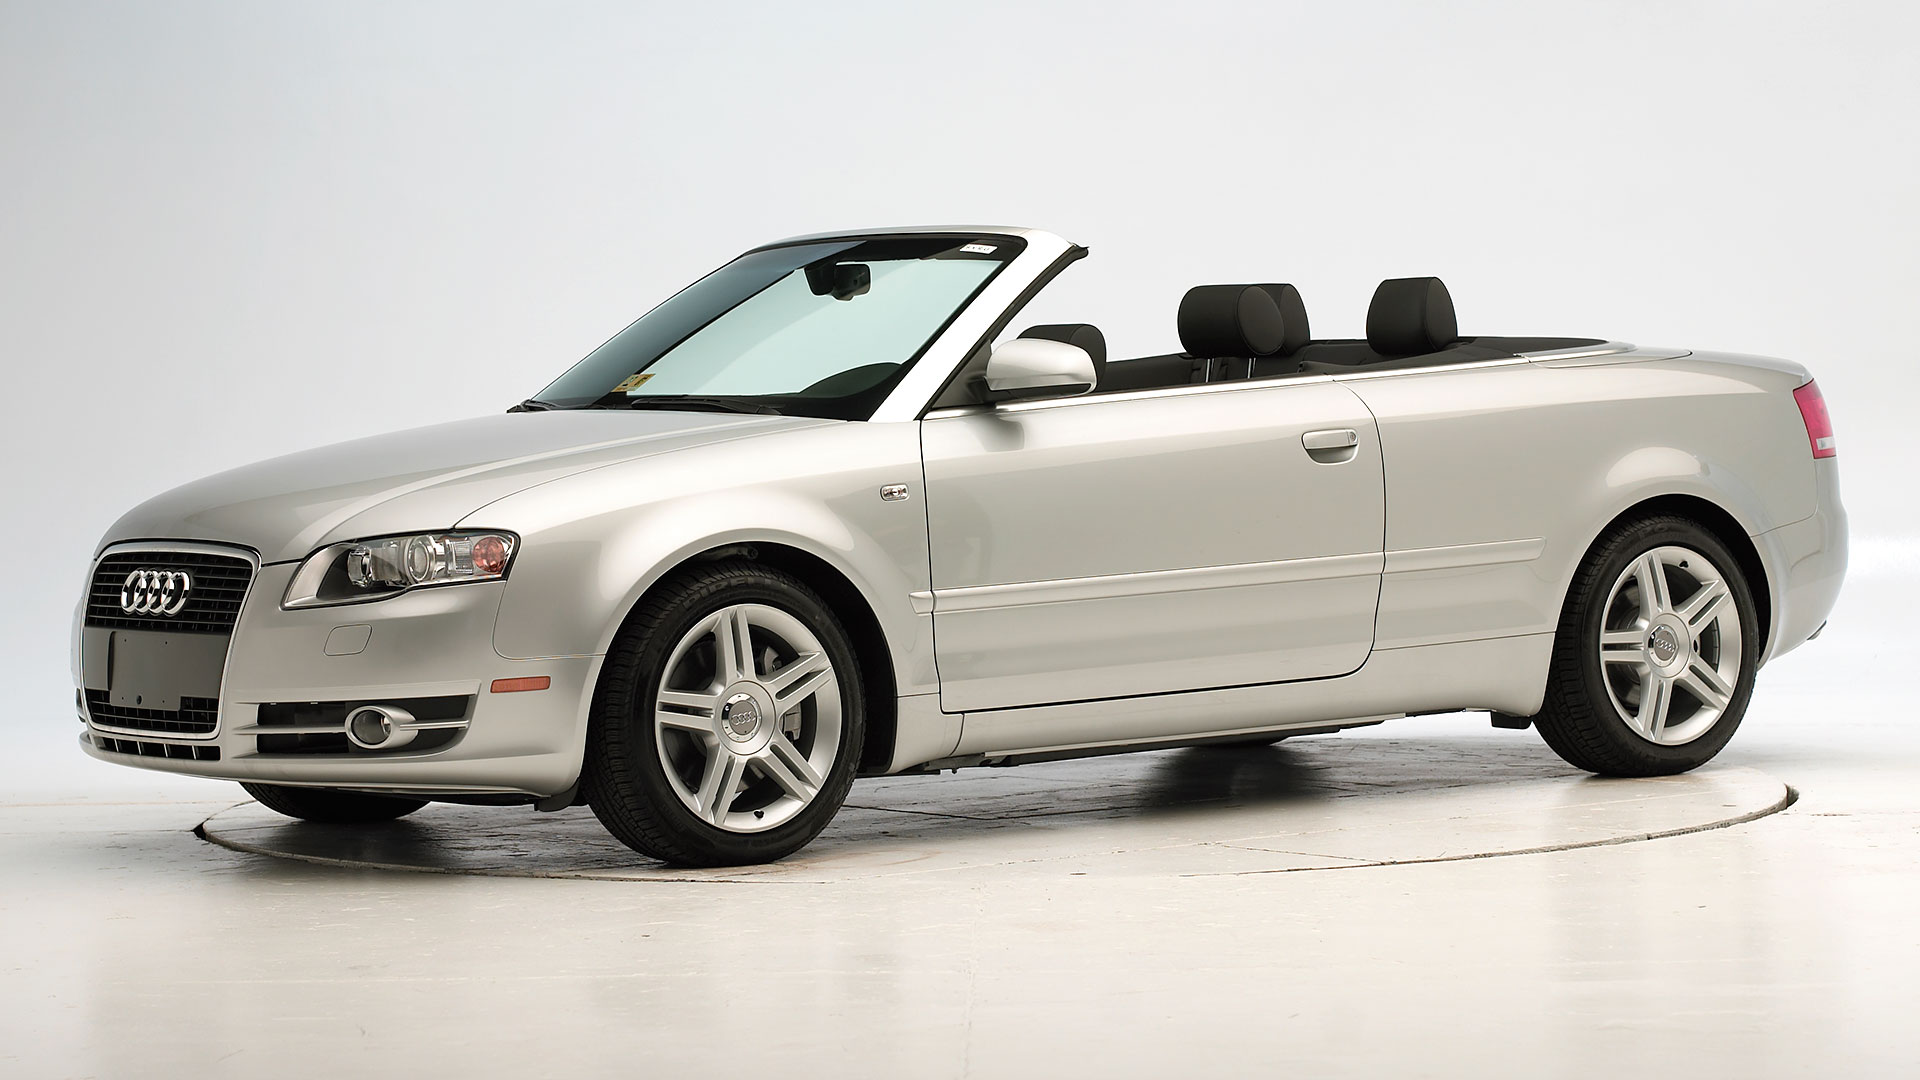 2009 Audi A4 Cabriolet 2-door convertible